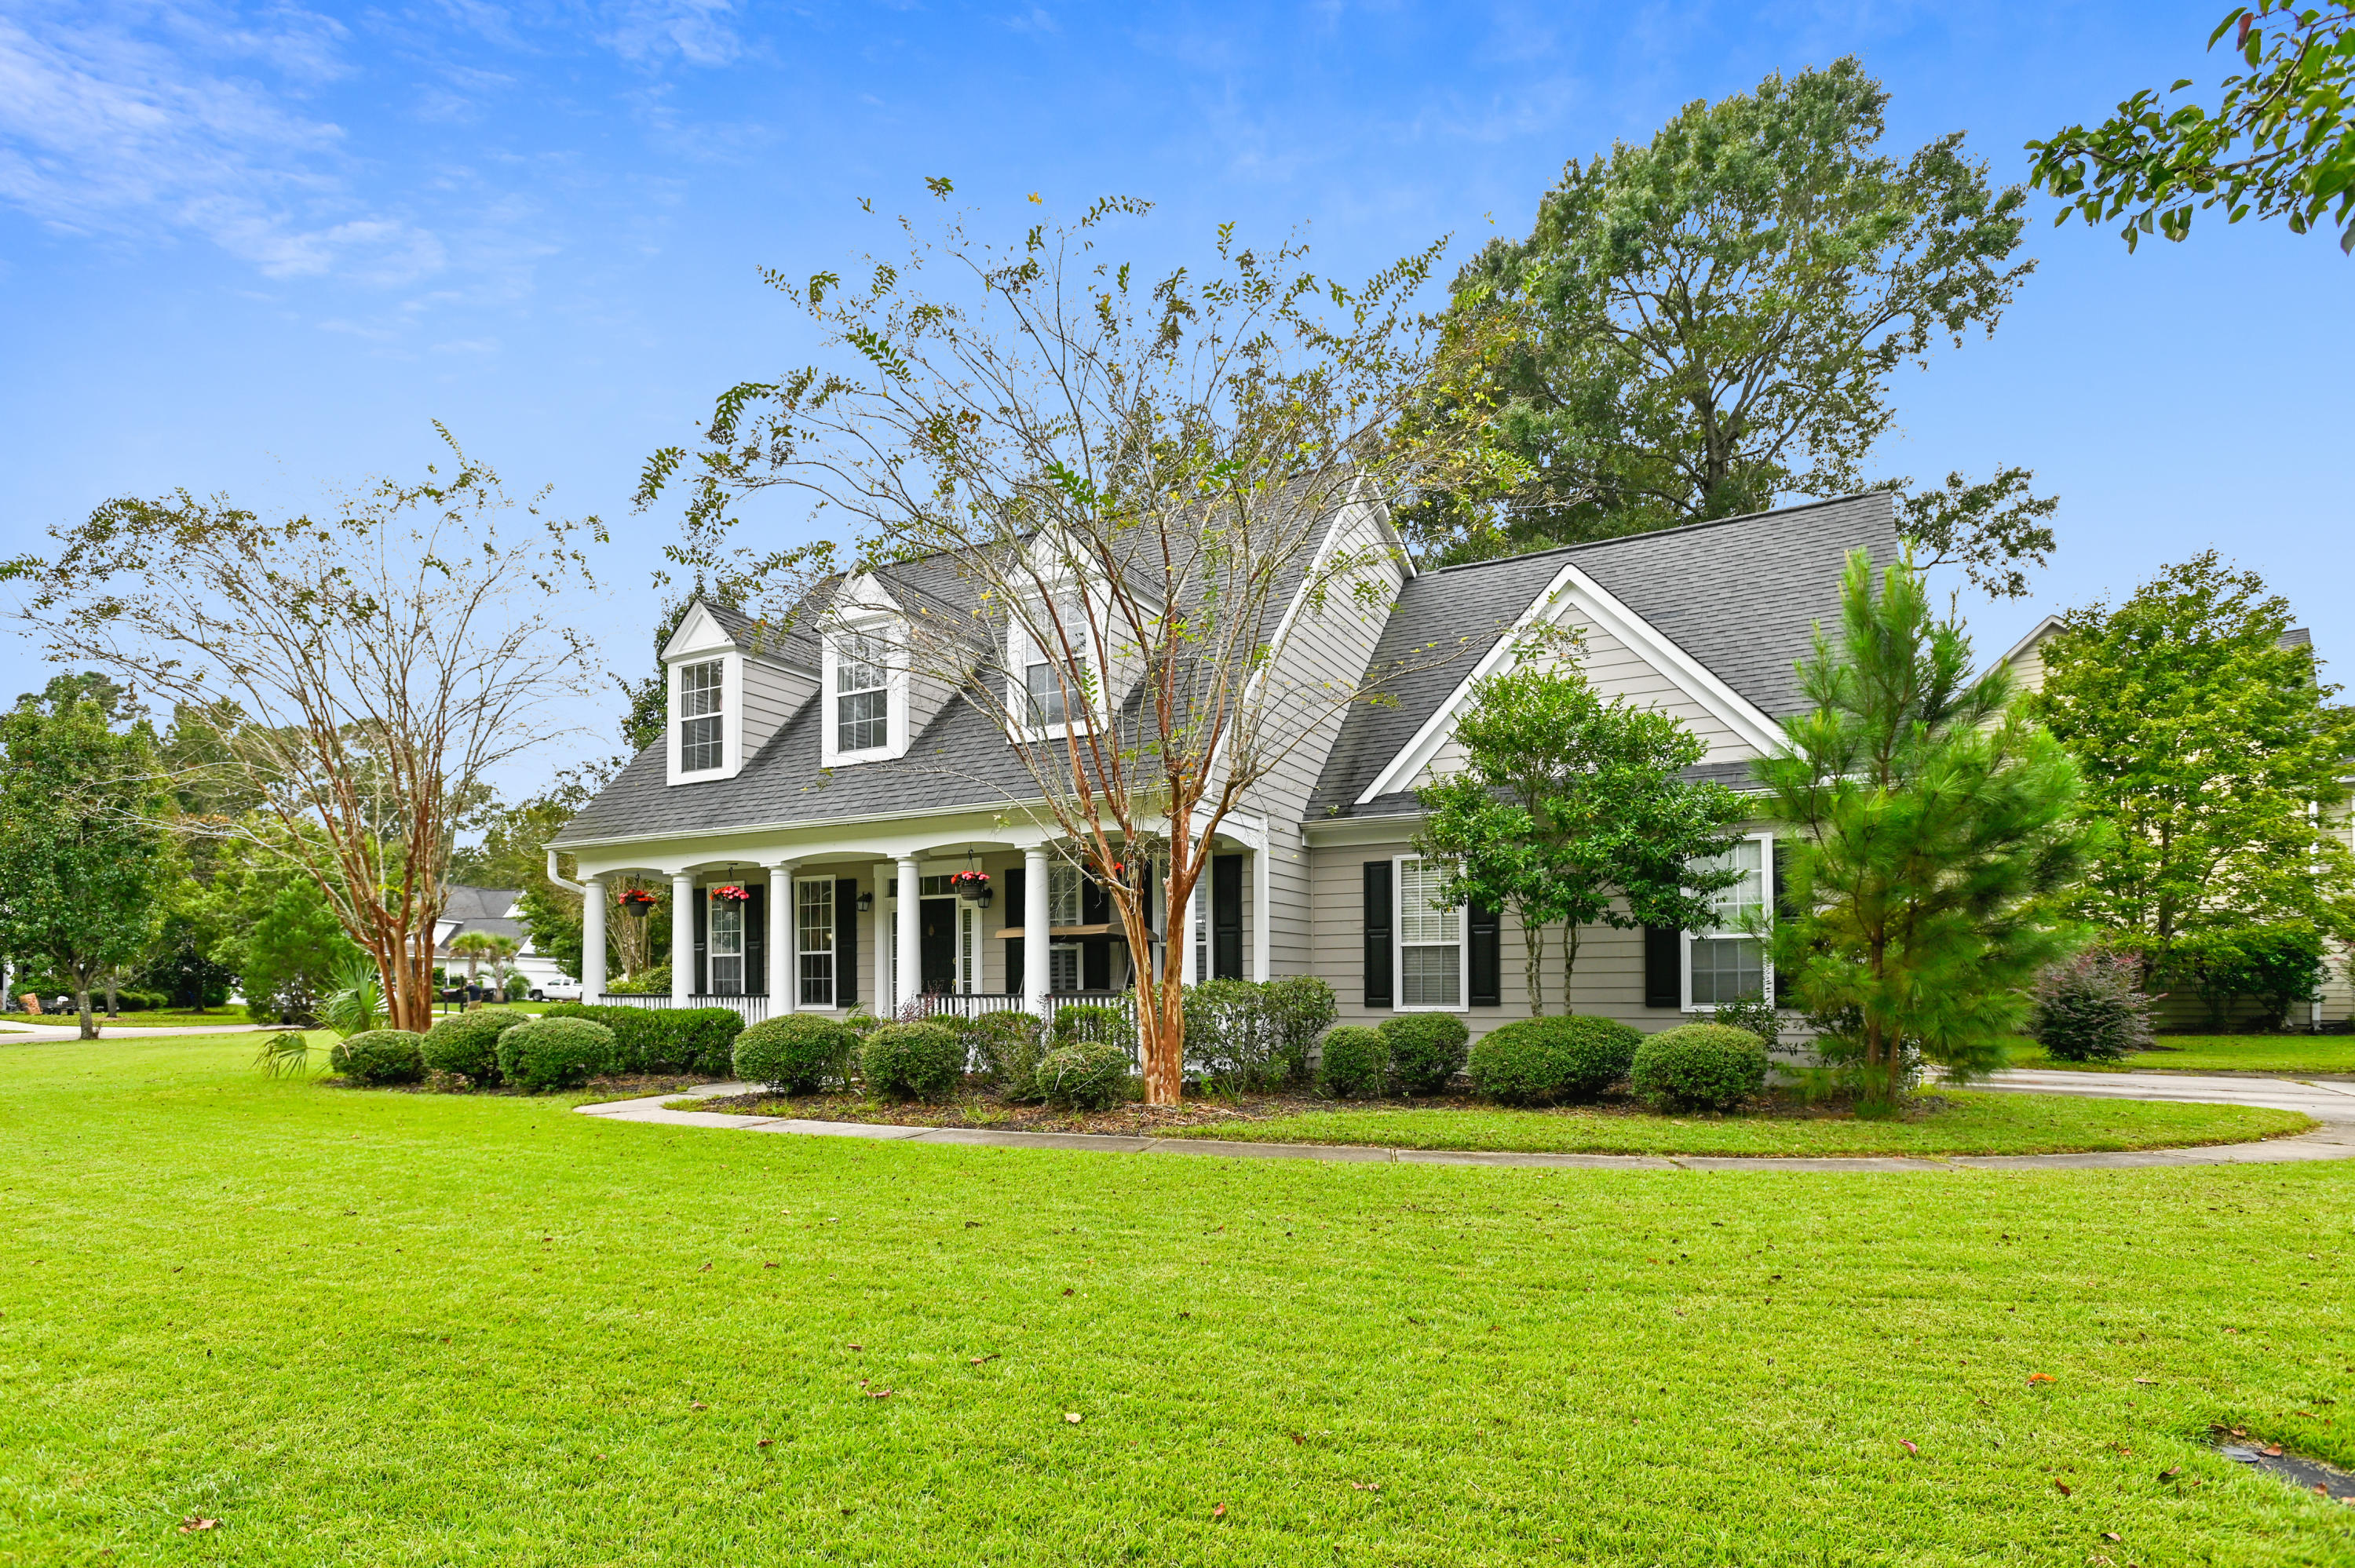 Dunes West Homes For Sale - 2137 Tall Grass, Mount Pleasant, SC - 4